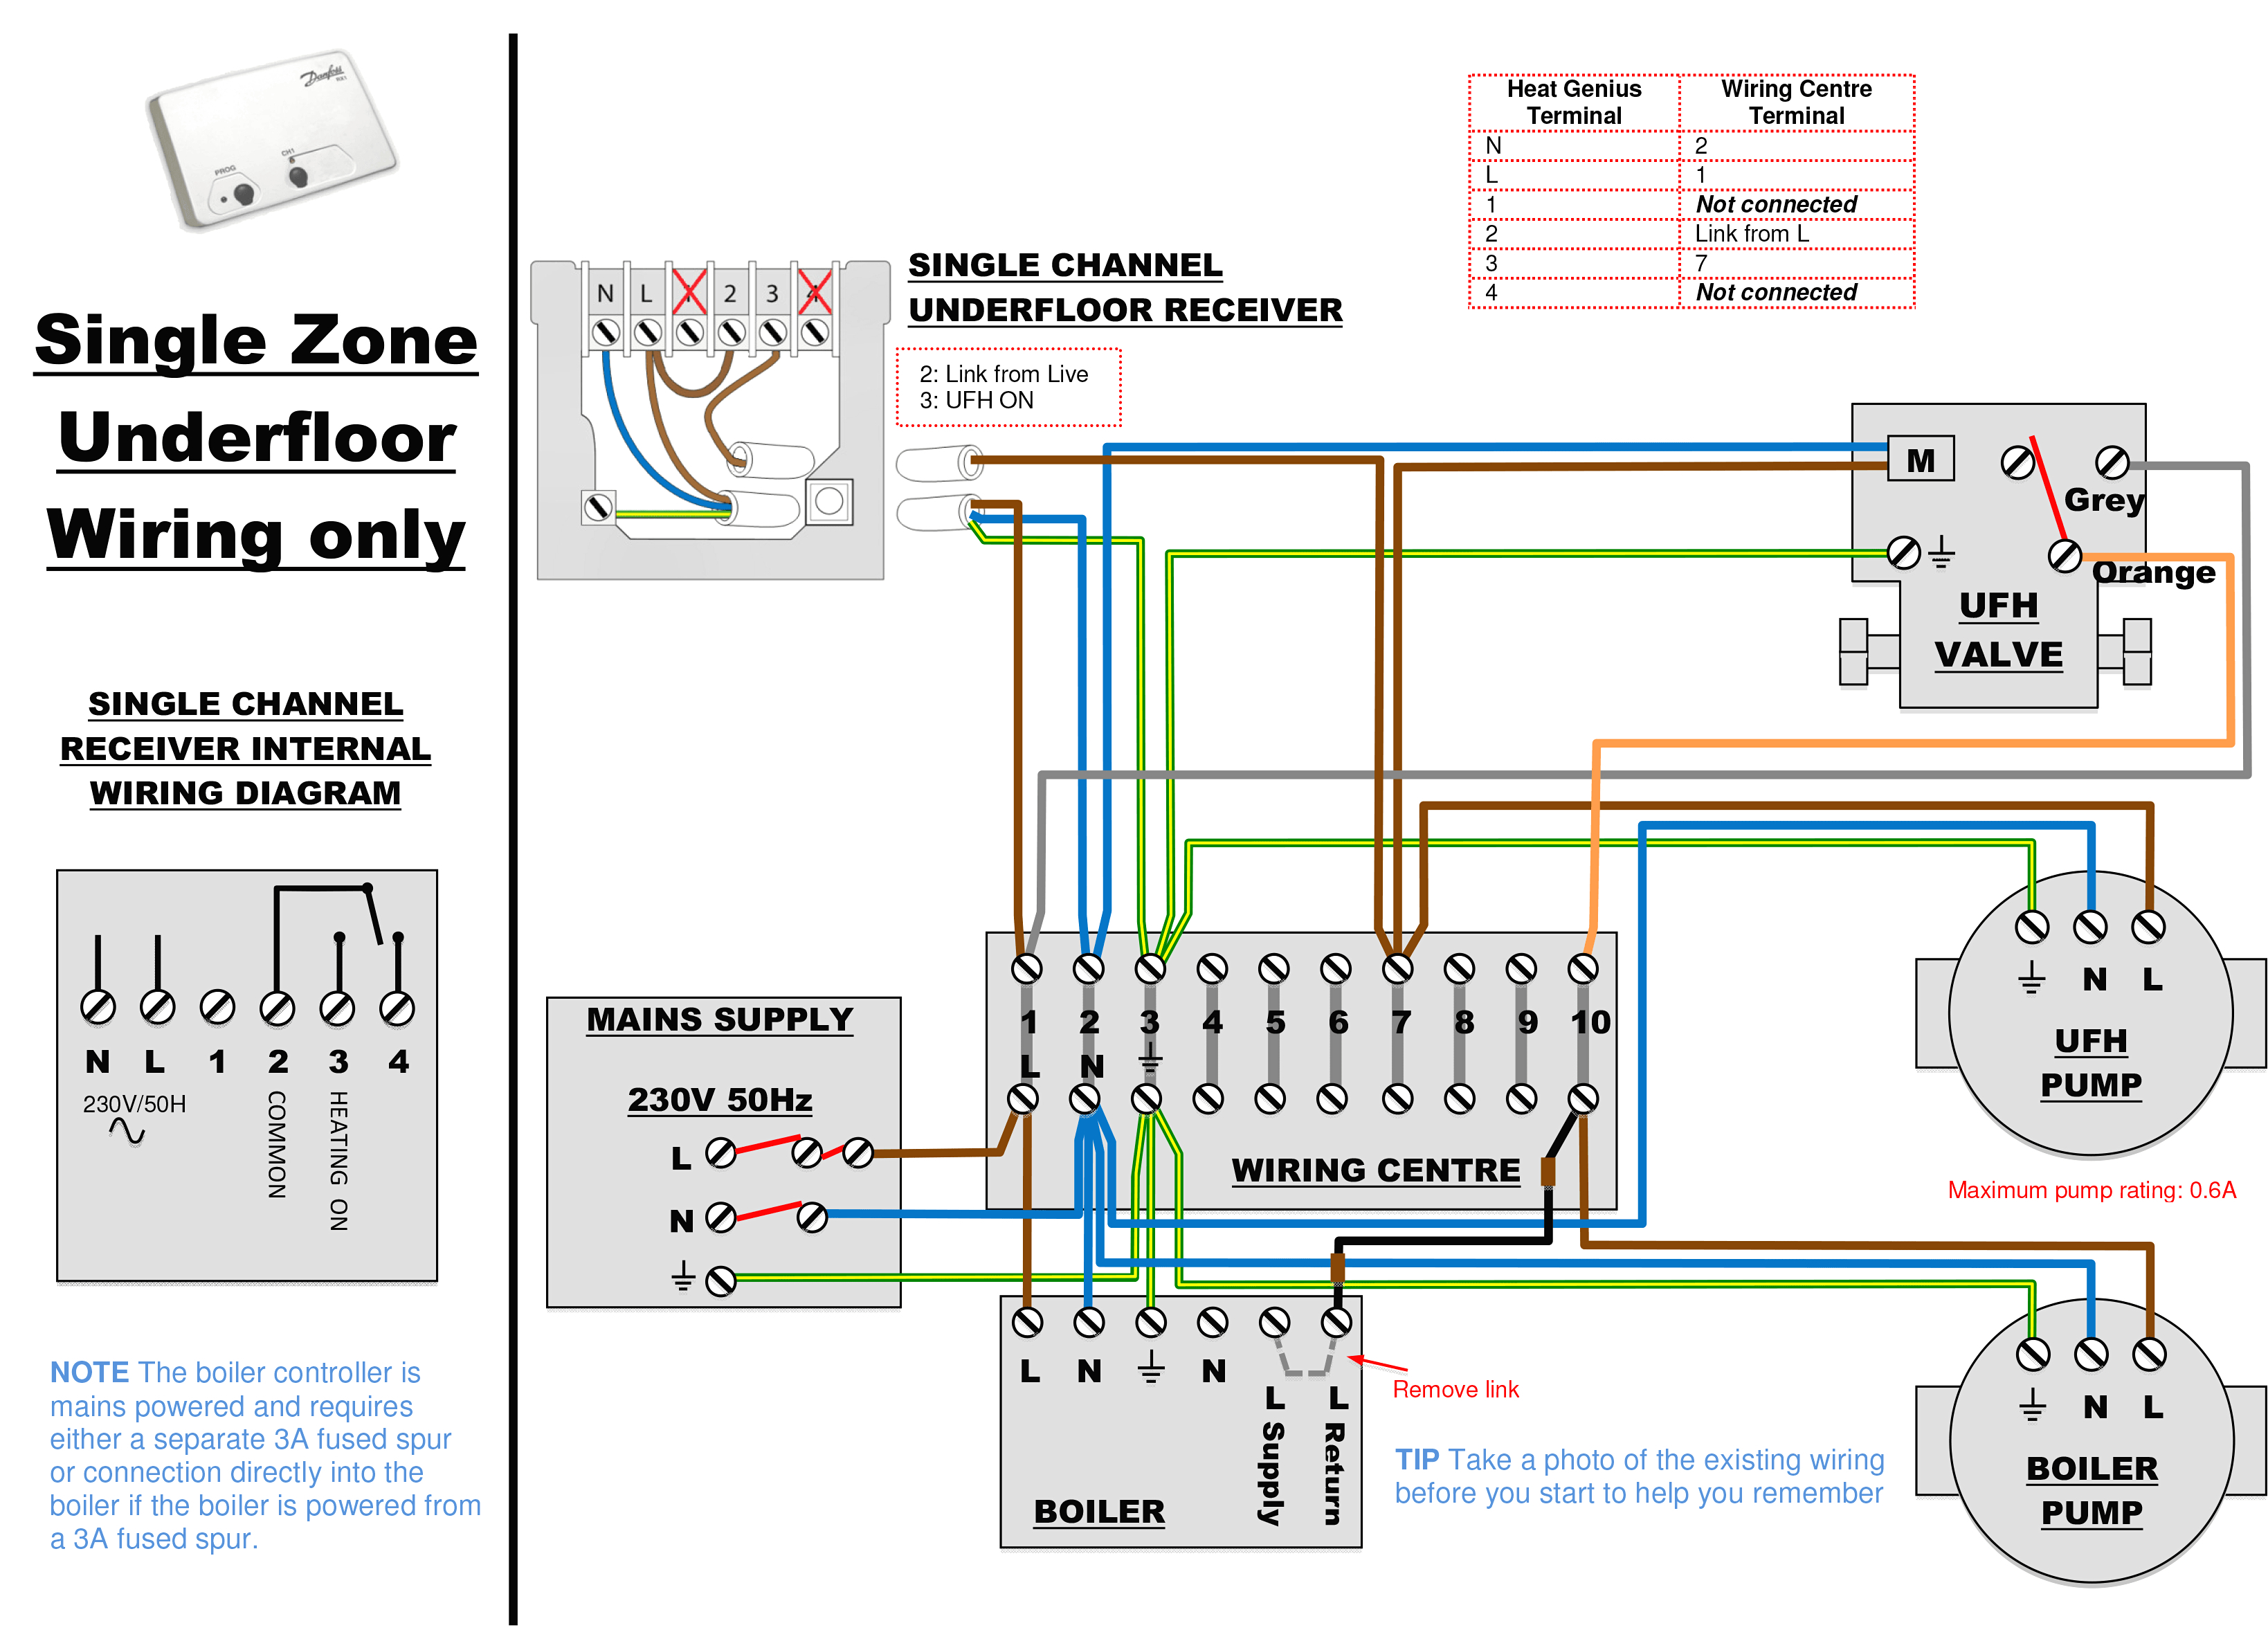 electric floor heating wiring diagram Download-central boiler thermostat wiring diagram Download Hive Thermostat Wiring Diagram Fresh Boiler Wiring Diagram For 16-k